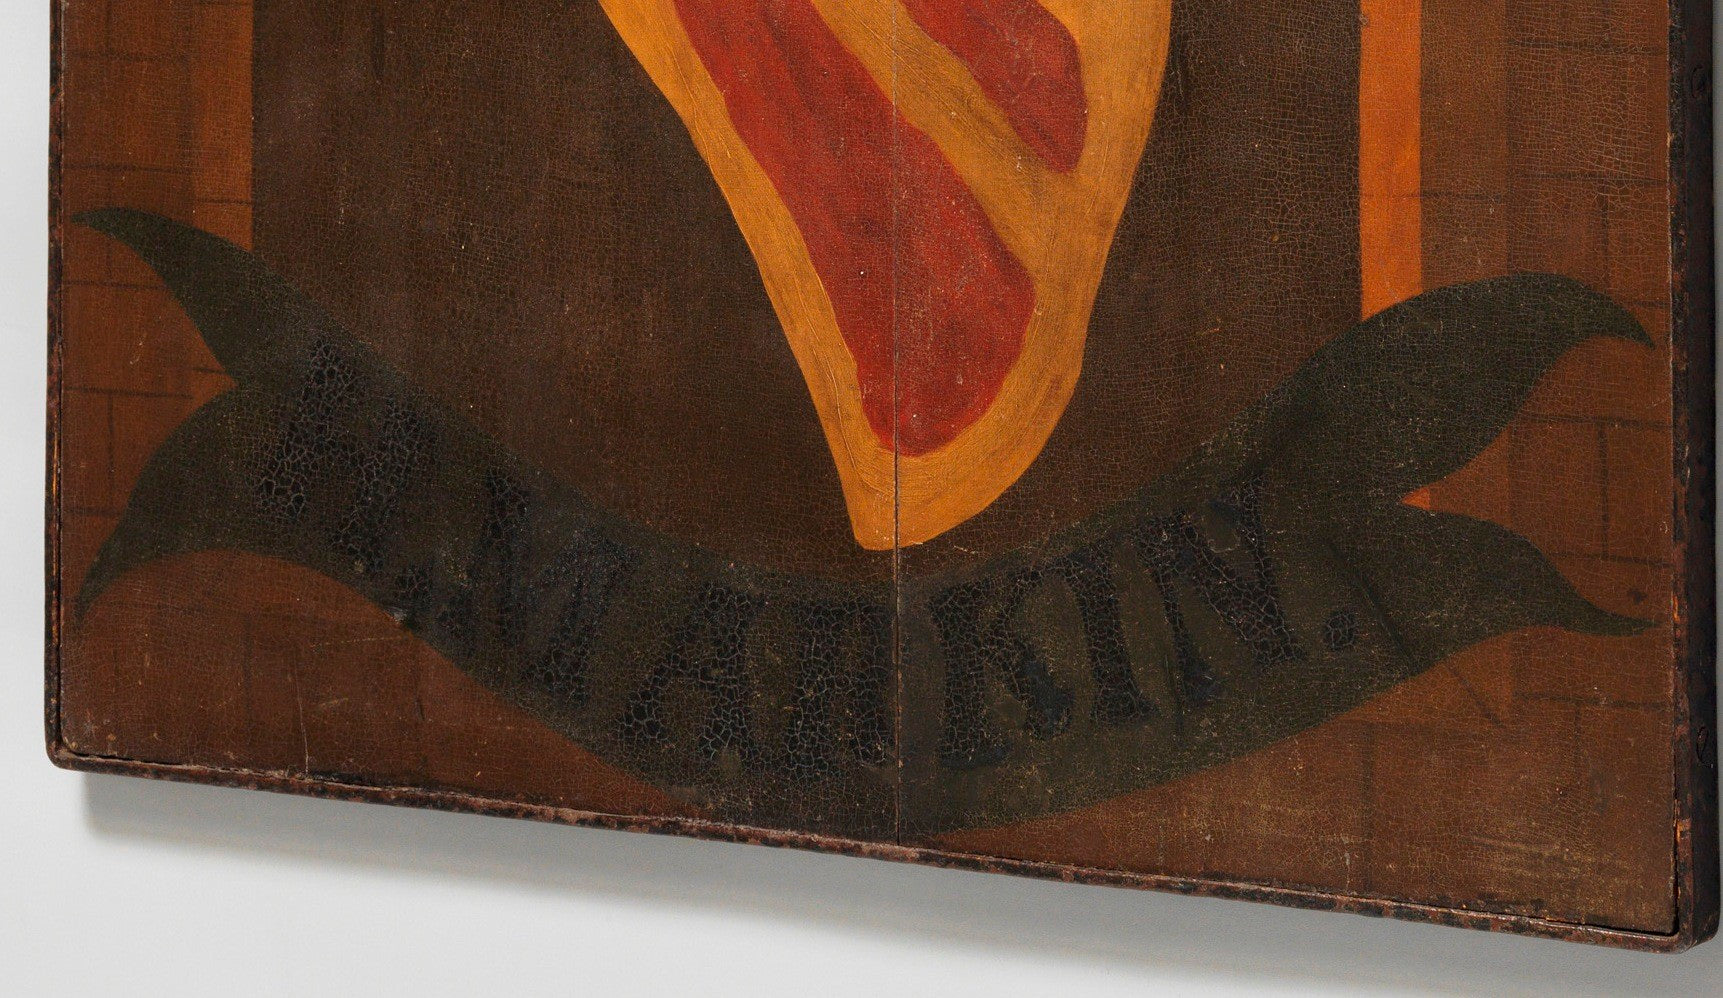 Original Double-Sided Butcher's Trade Sign For 'H.M. ARKIN'